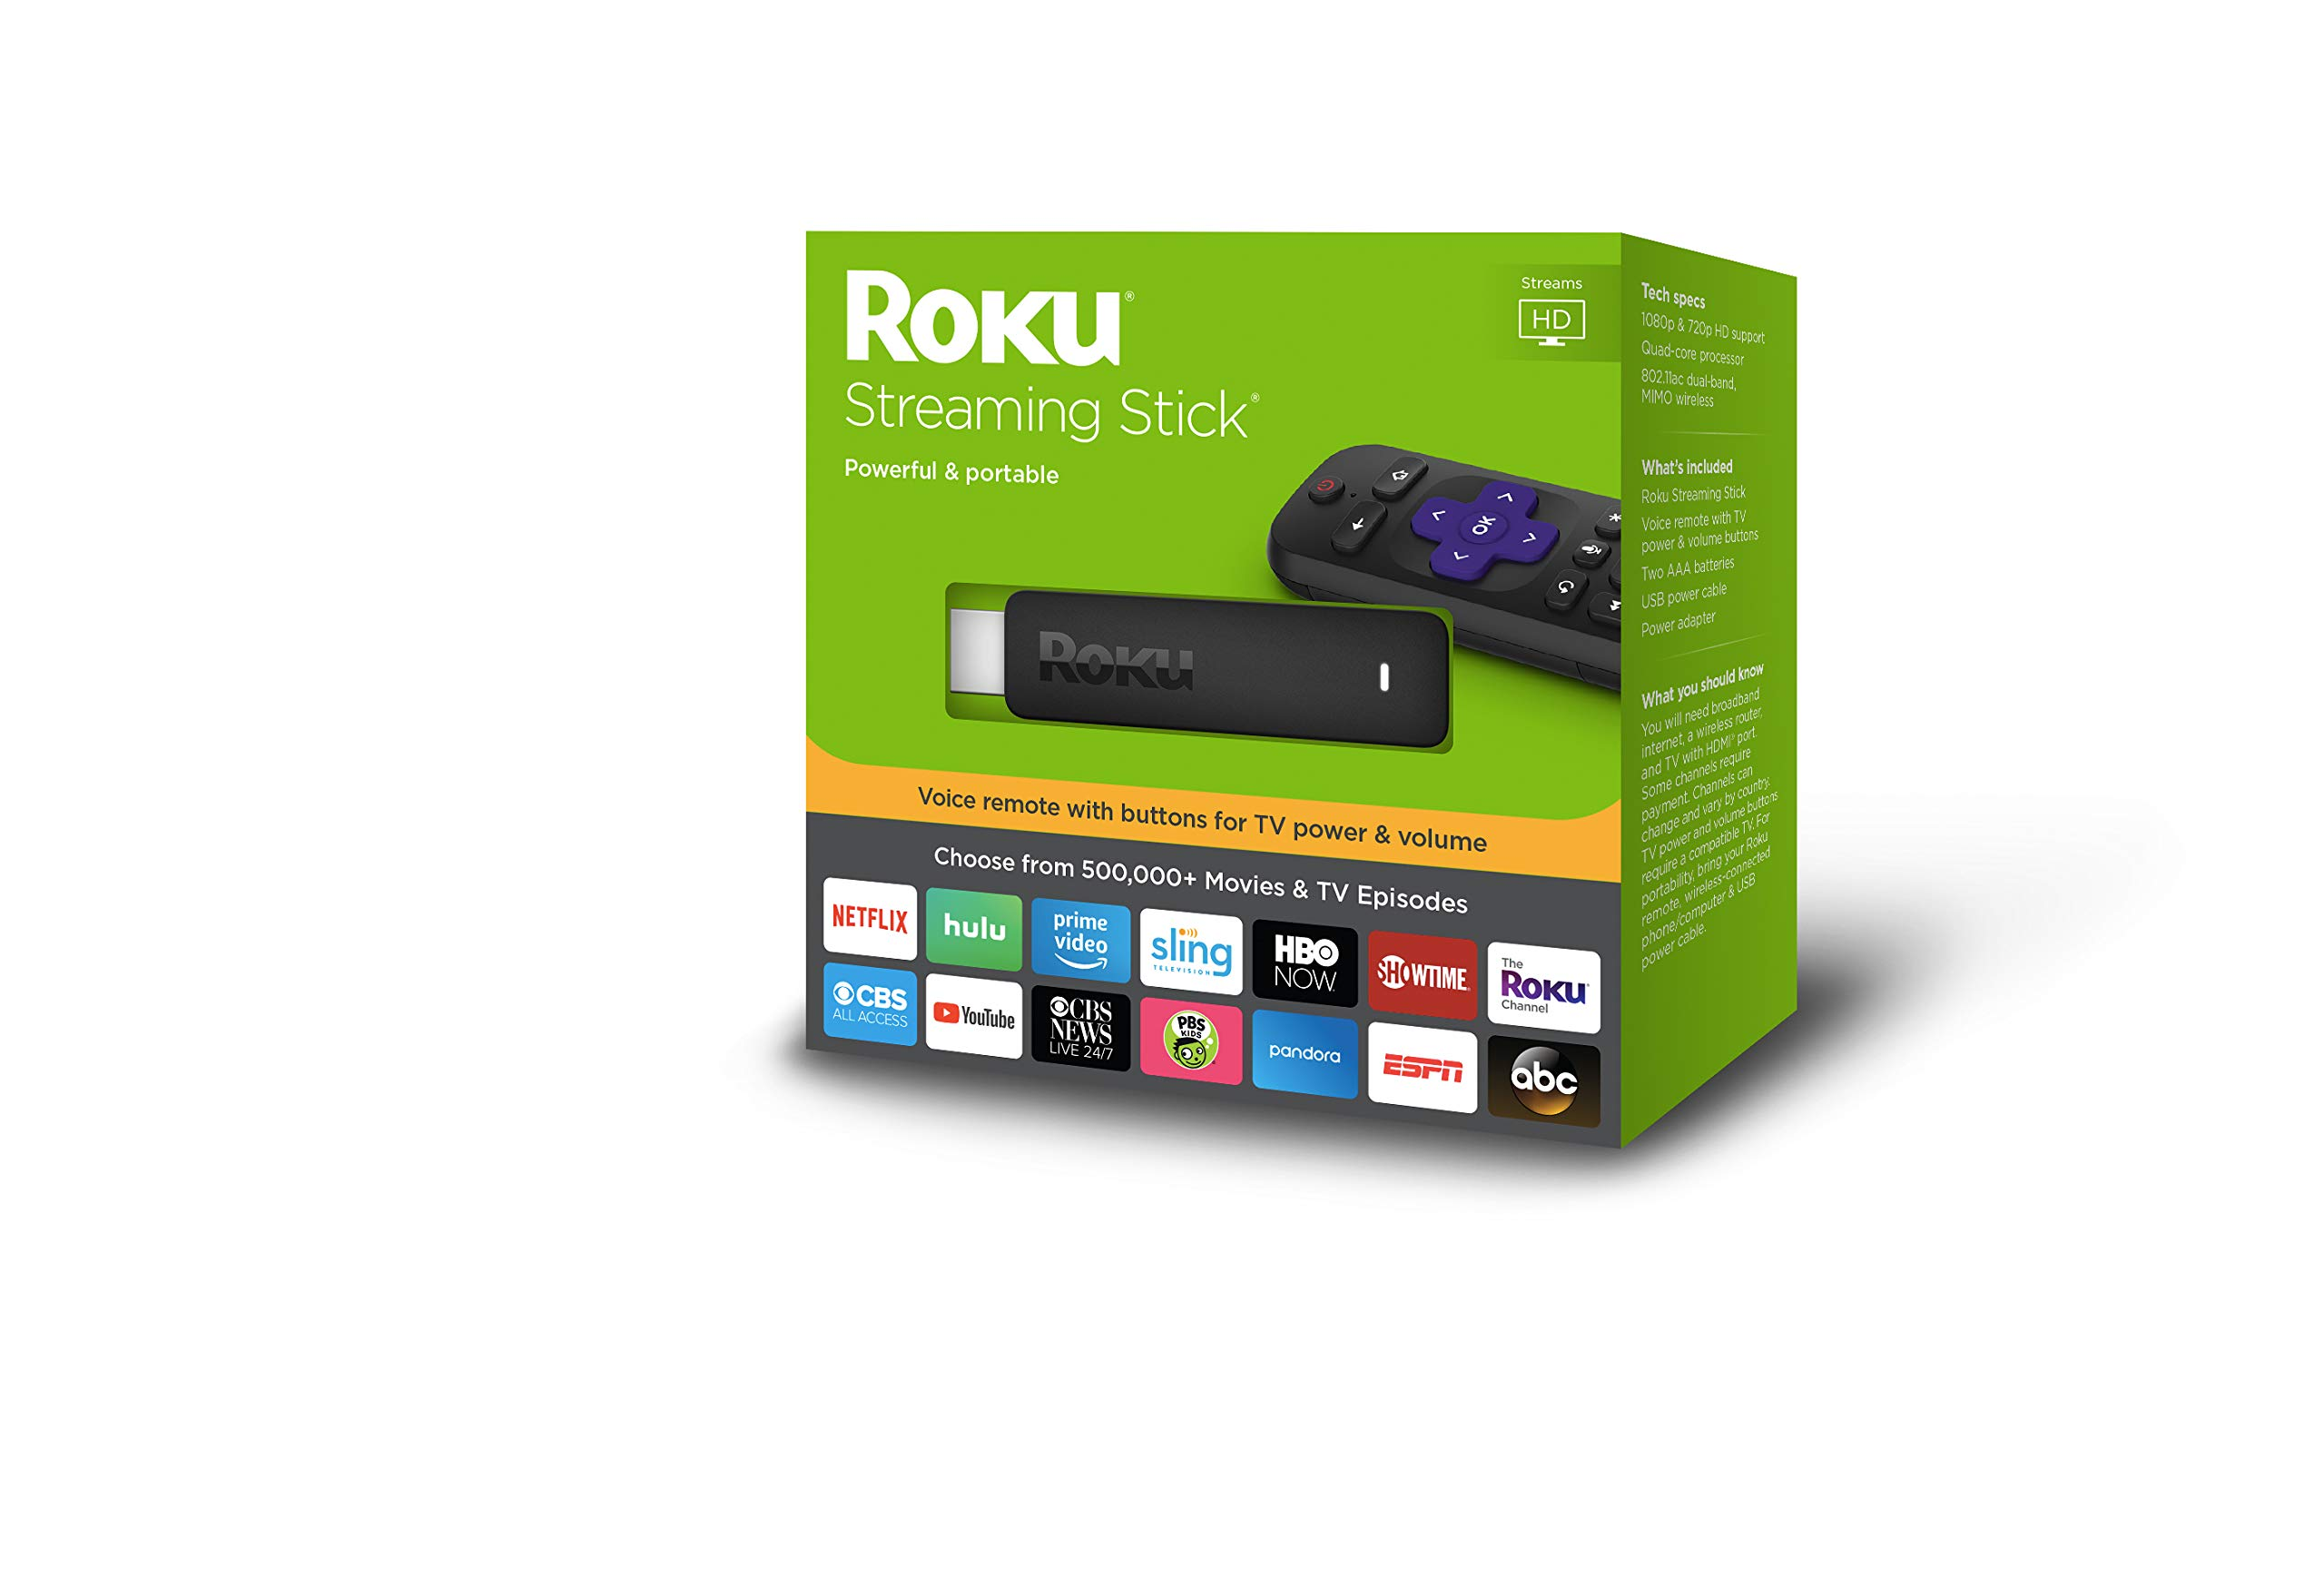 Roku Streaming Stick | Portable, Power-Packed Streaming Device with Voice Remote with Buttons for TV Power and Volume by Roku